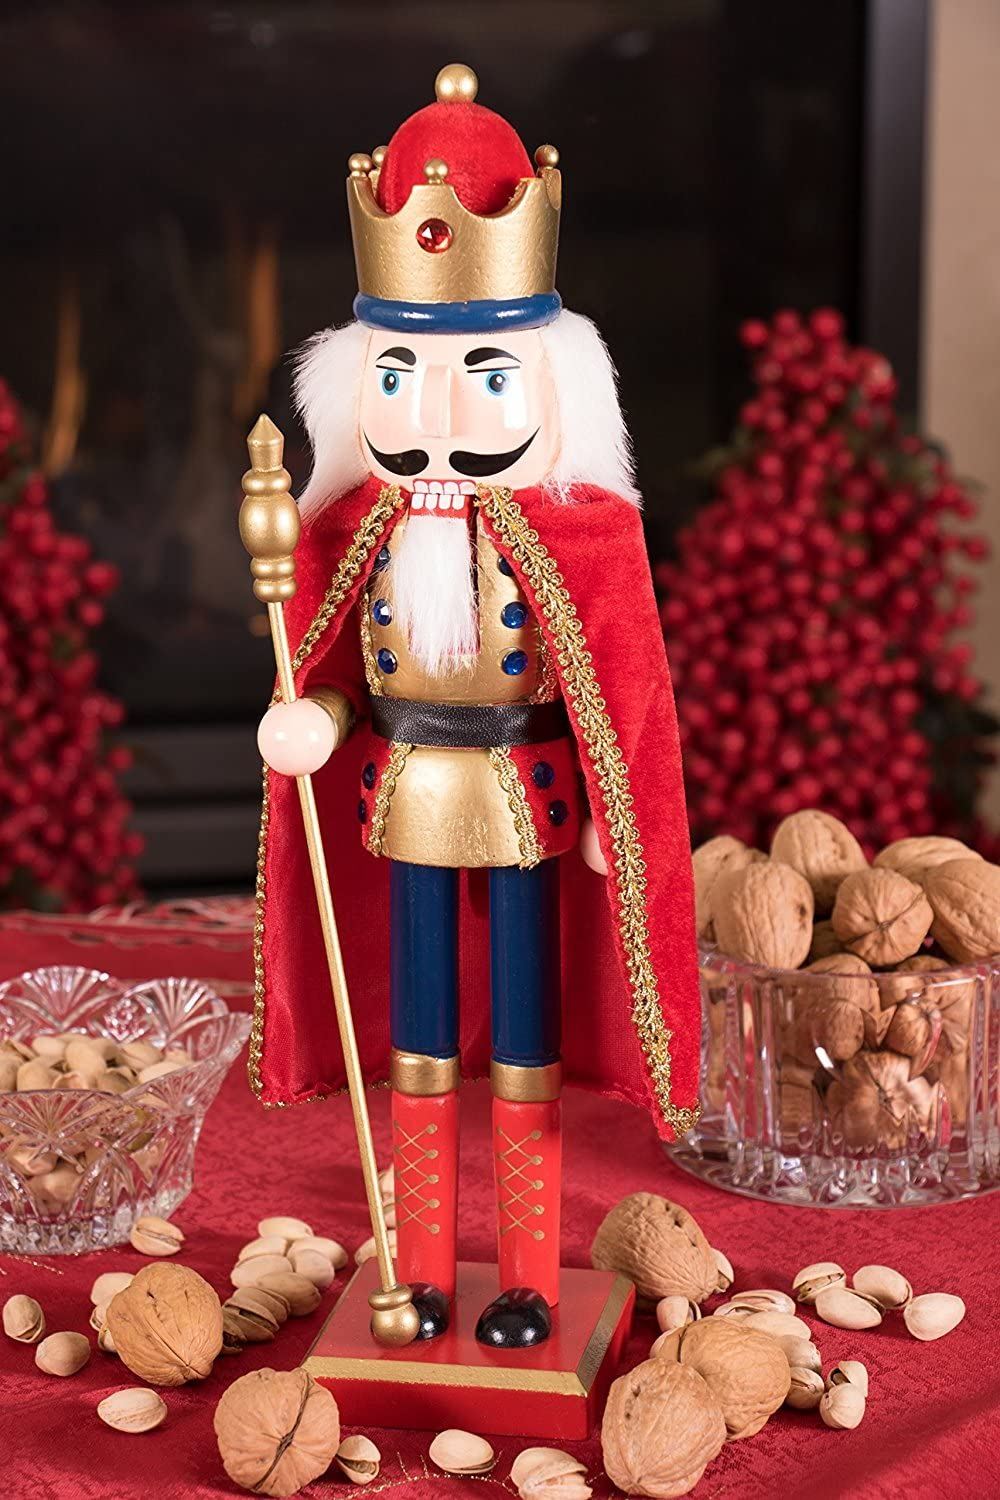 Collectible Wooden Christmas Nutcracker 15 Tall Holding Gold Scepter Jeweled Crown 100/% Wood Clever Creations Traditional King Nutcracker Gold and Red Uniform Festive Holiday Decor